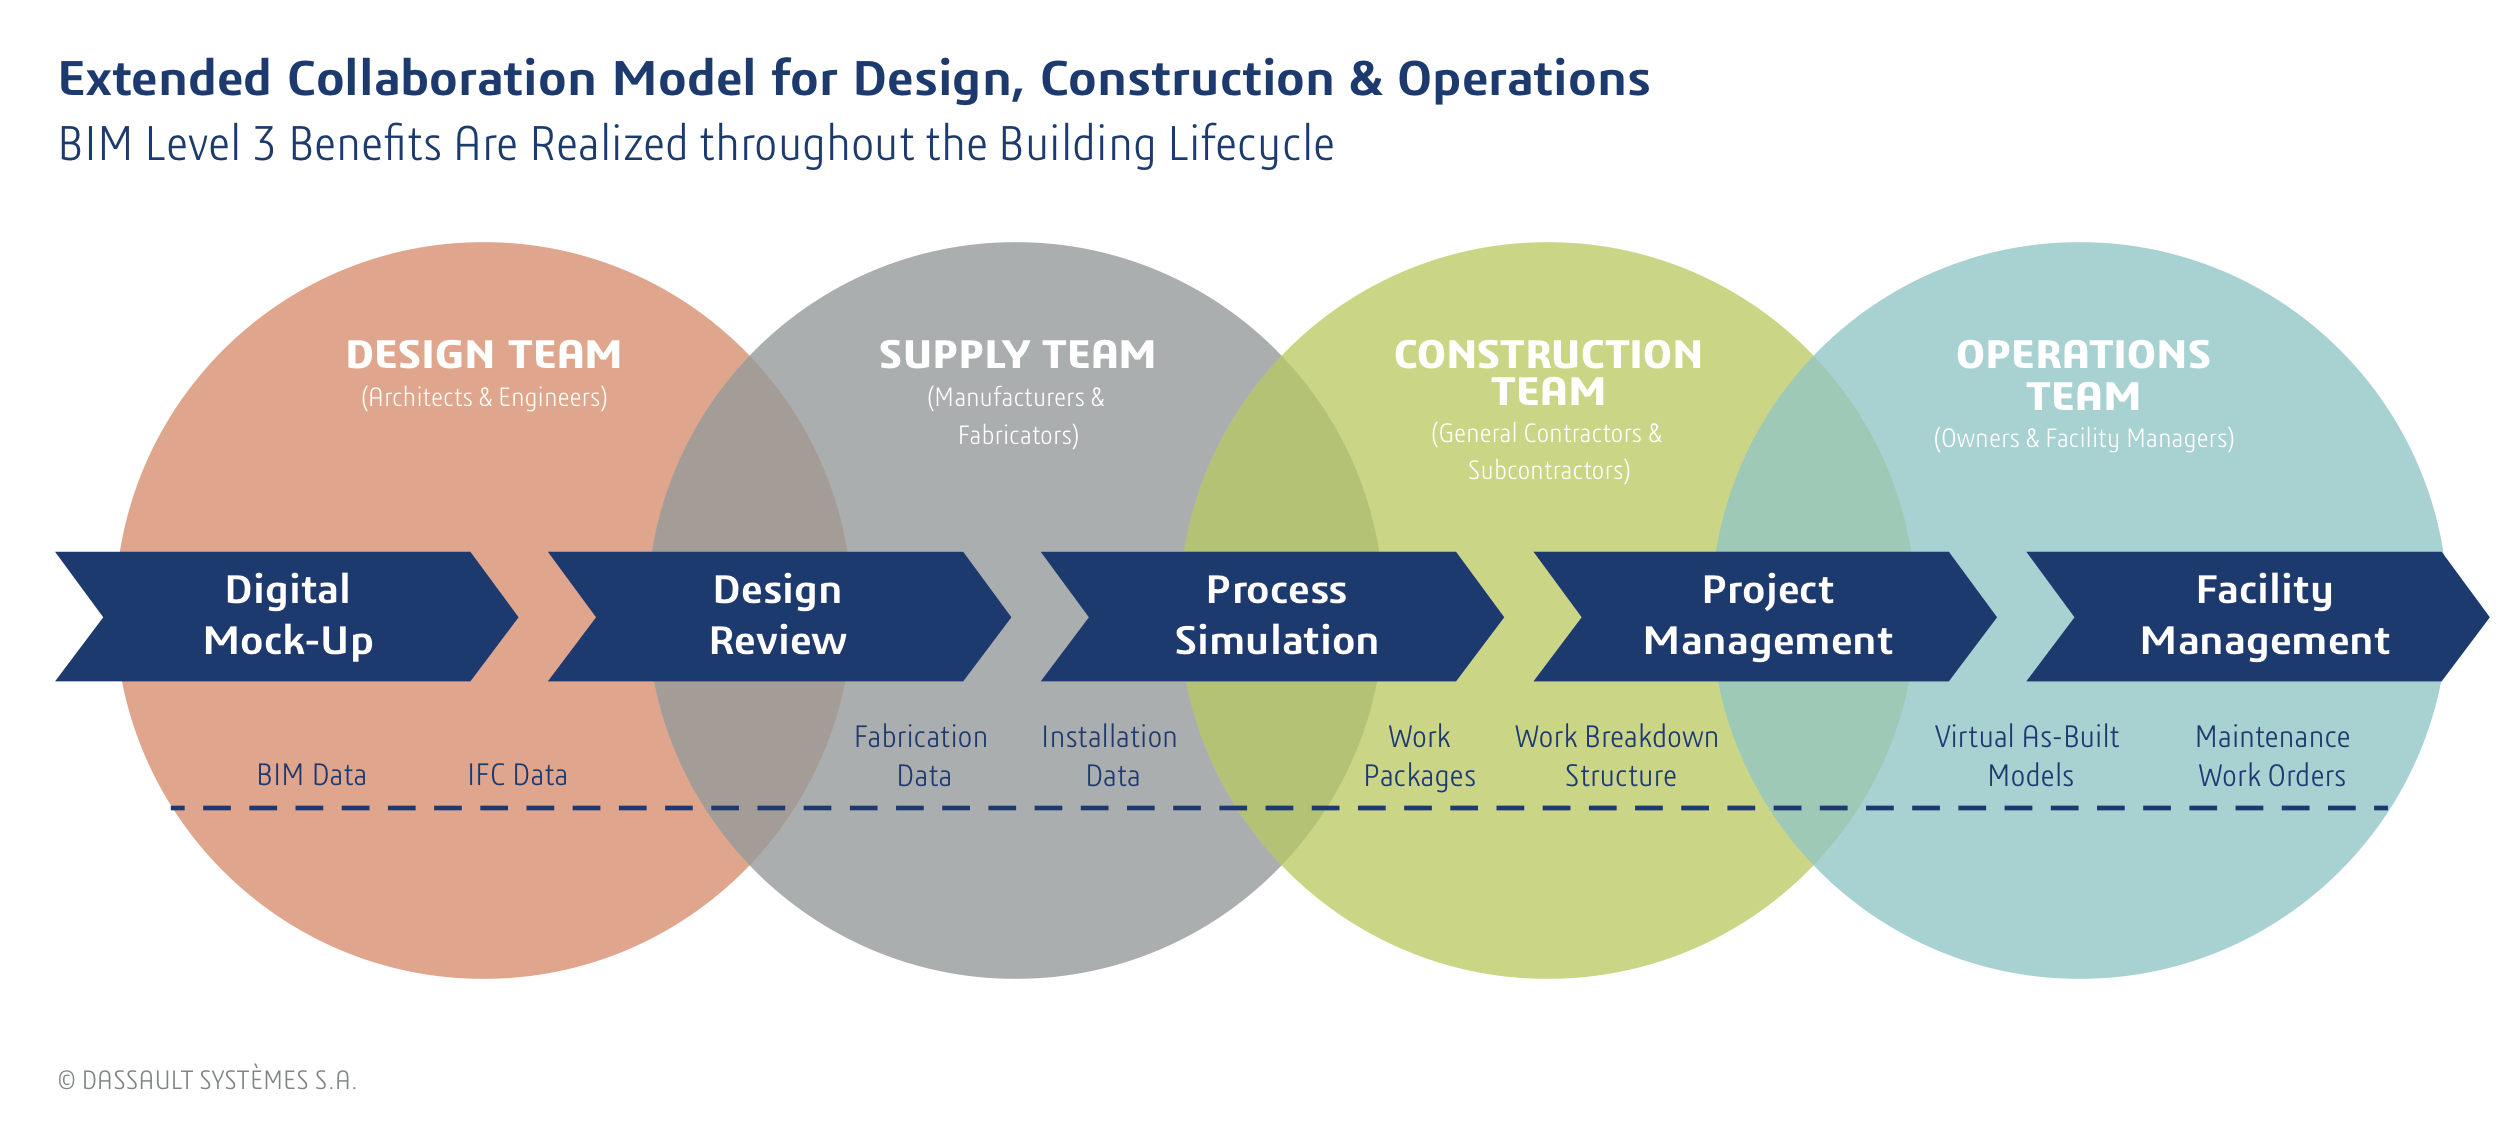 Extended Collaboration Model for Design, Construction & Operations